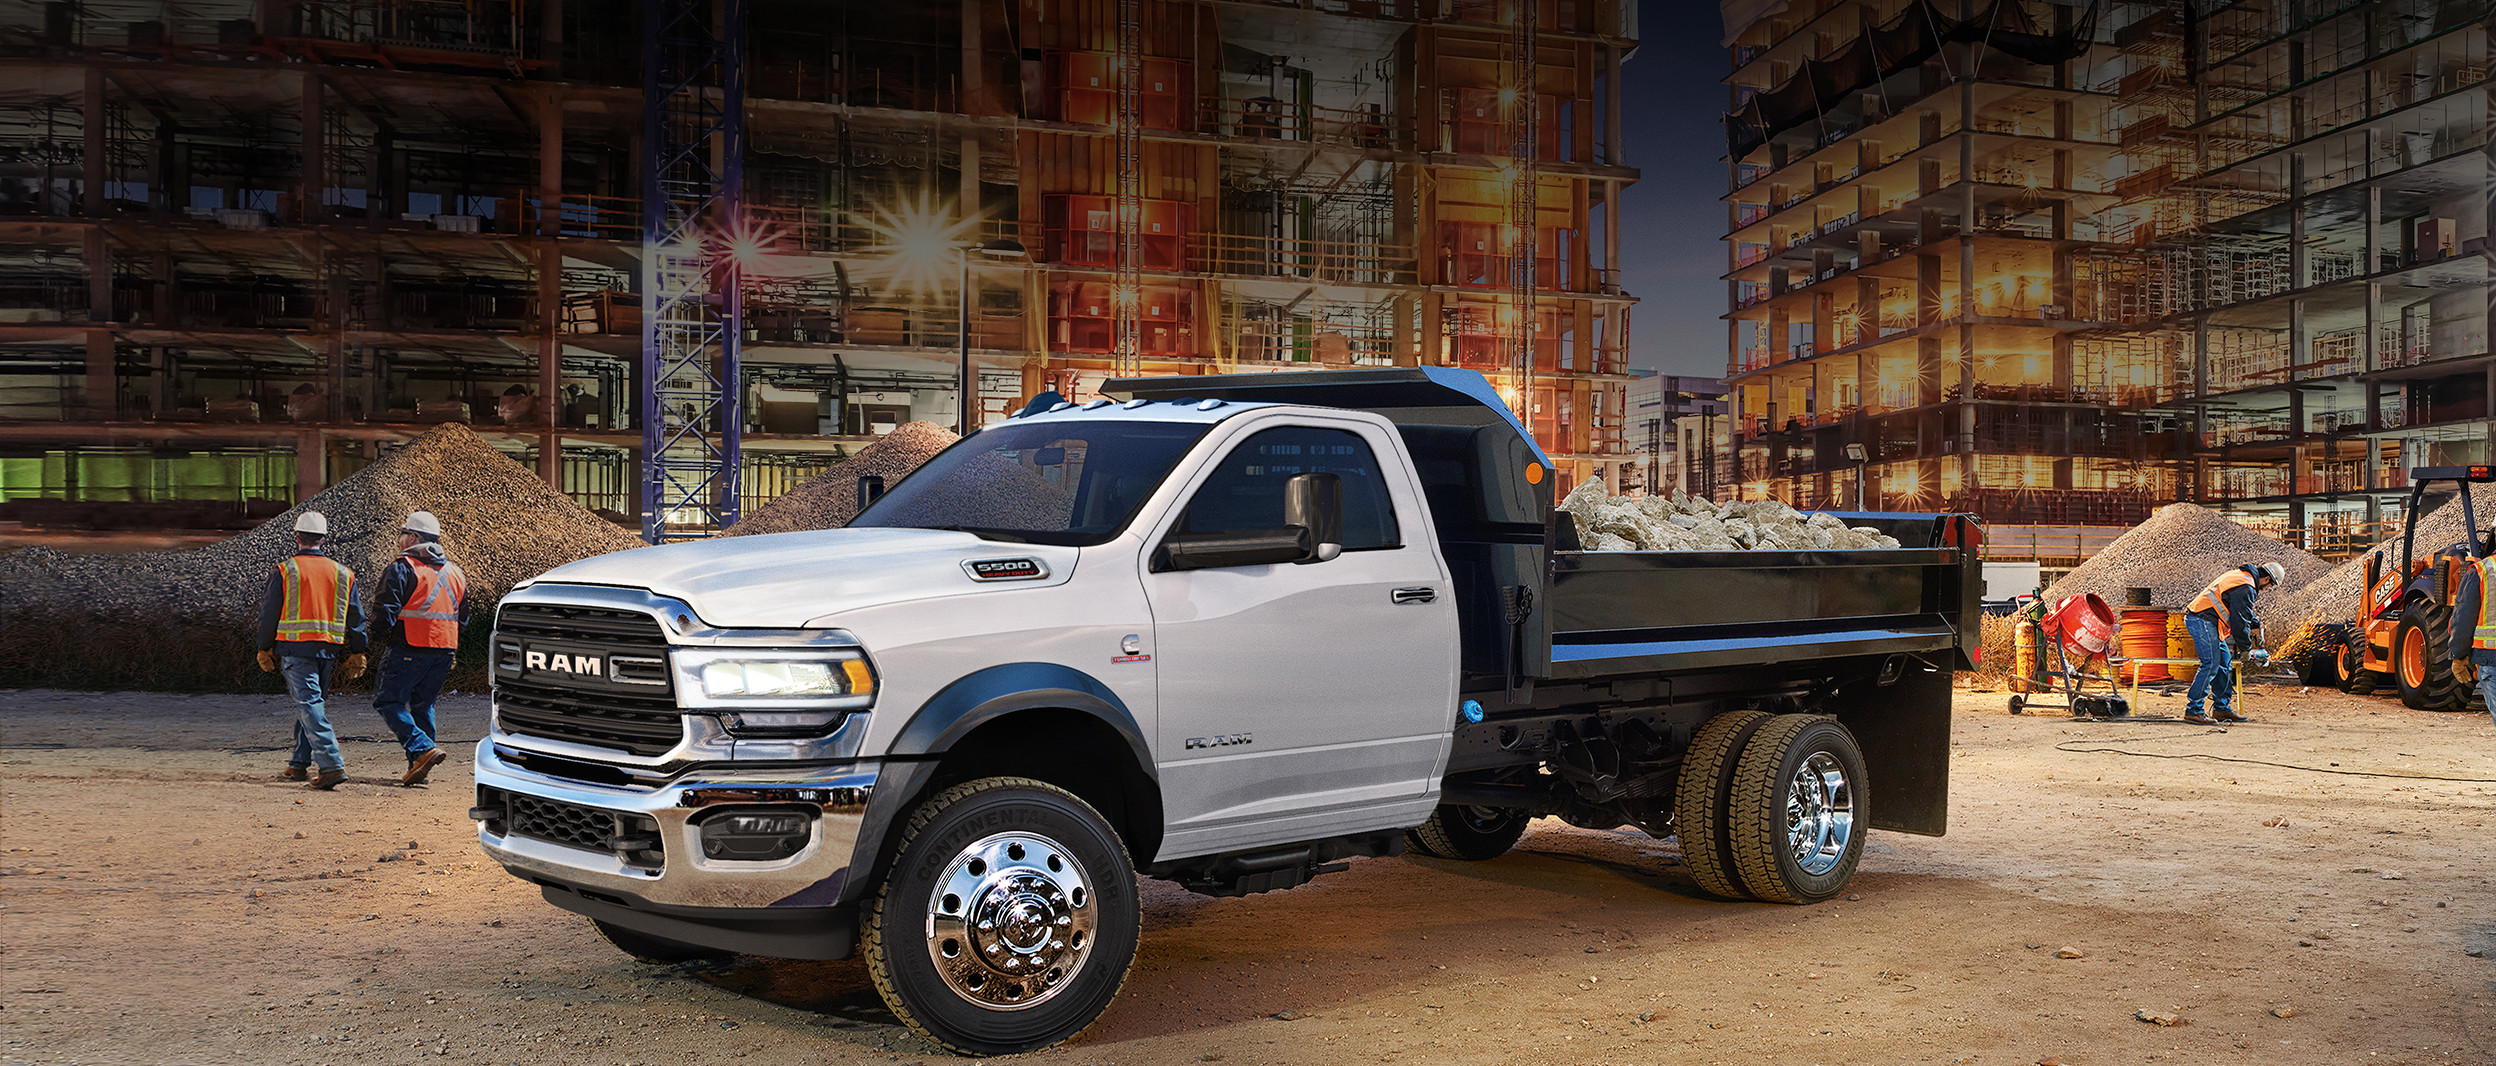 2019 Ram Chassis Cab | Ram Truck Canada